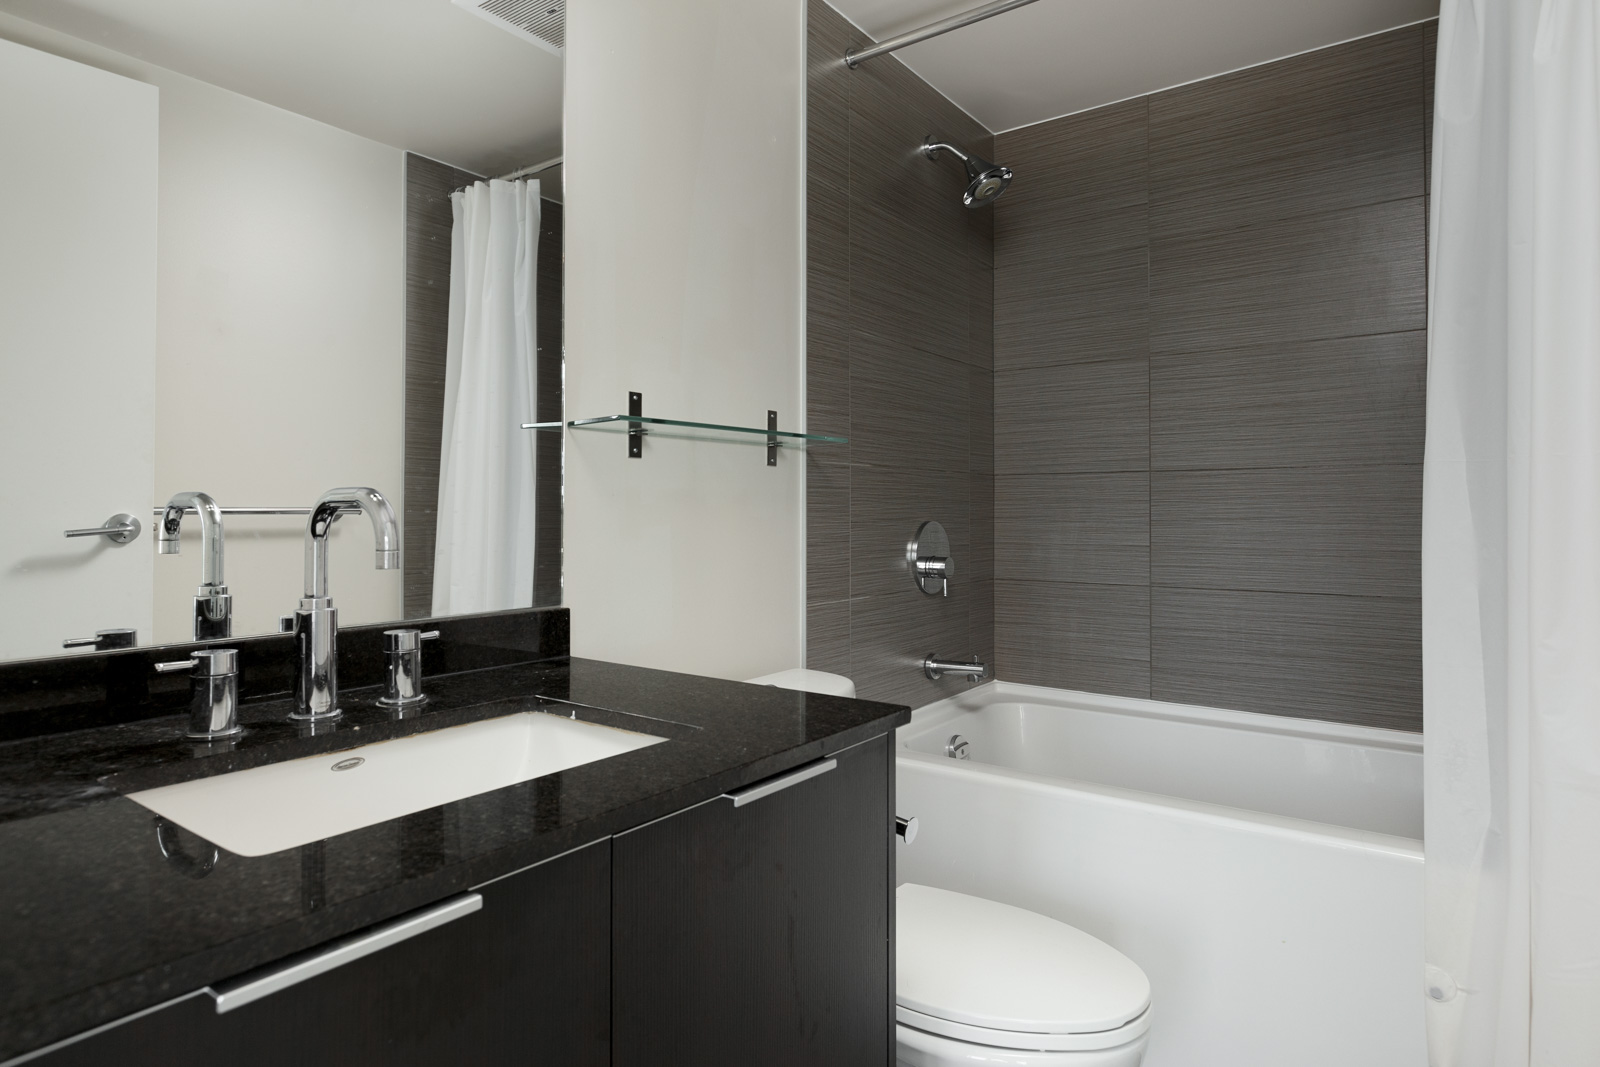 Bathroom in Vancouver luxury rental with black counter top next to toilet and bathtub.